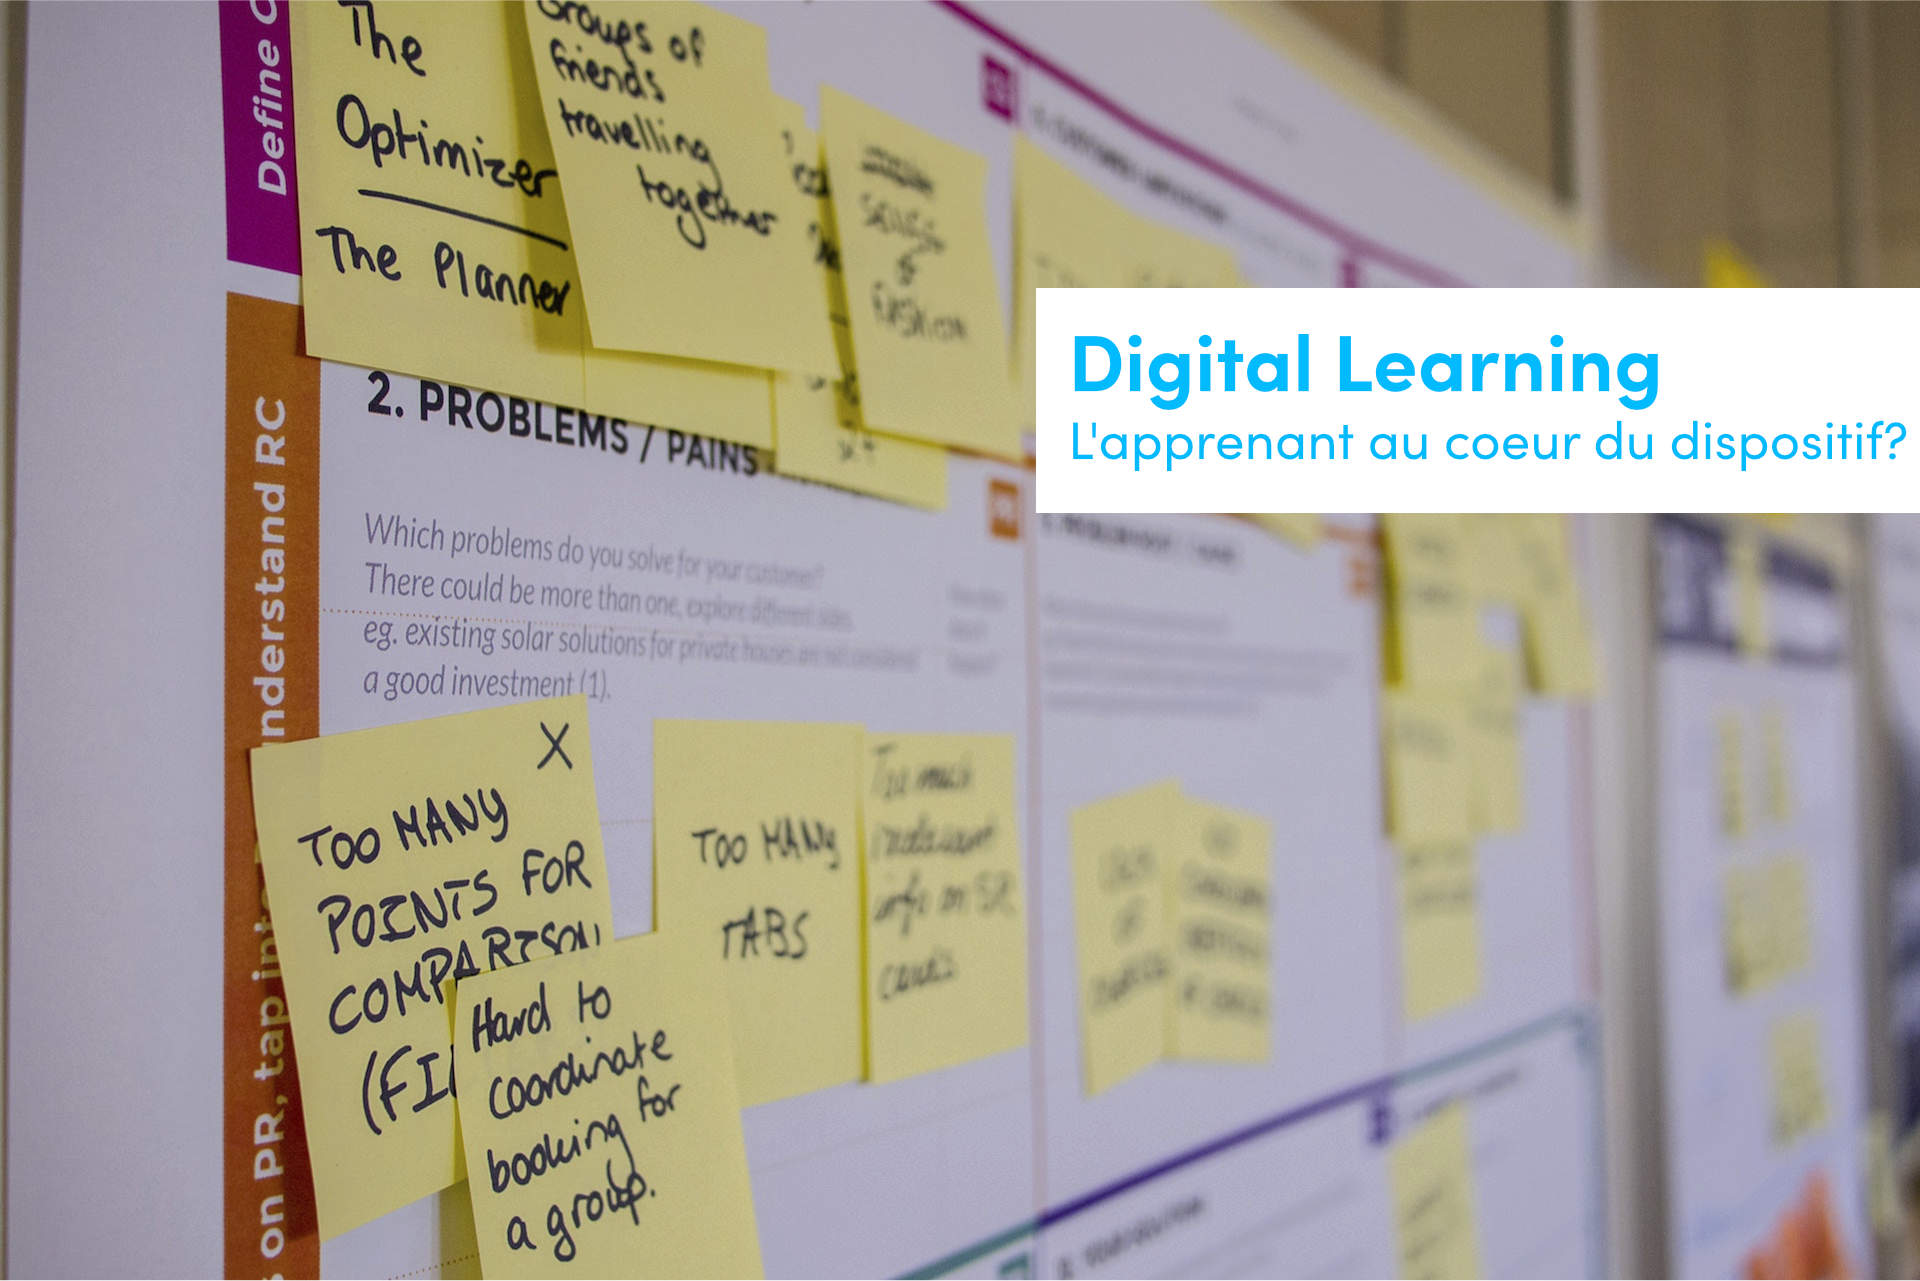 engager apprenants parcours digital learning